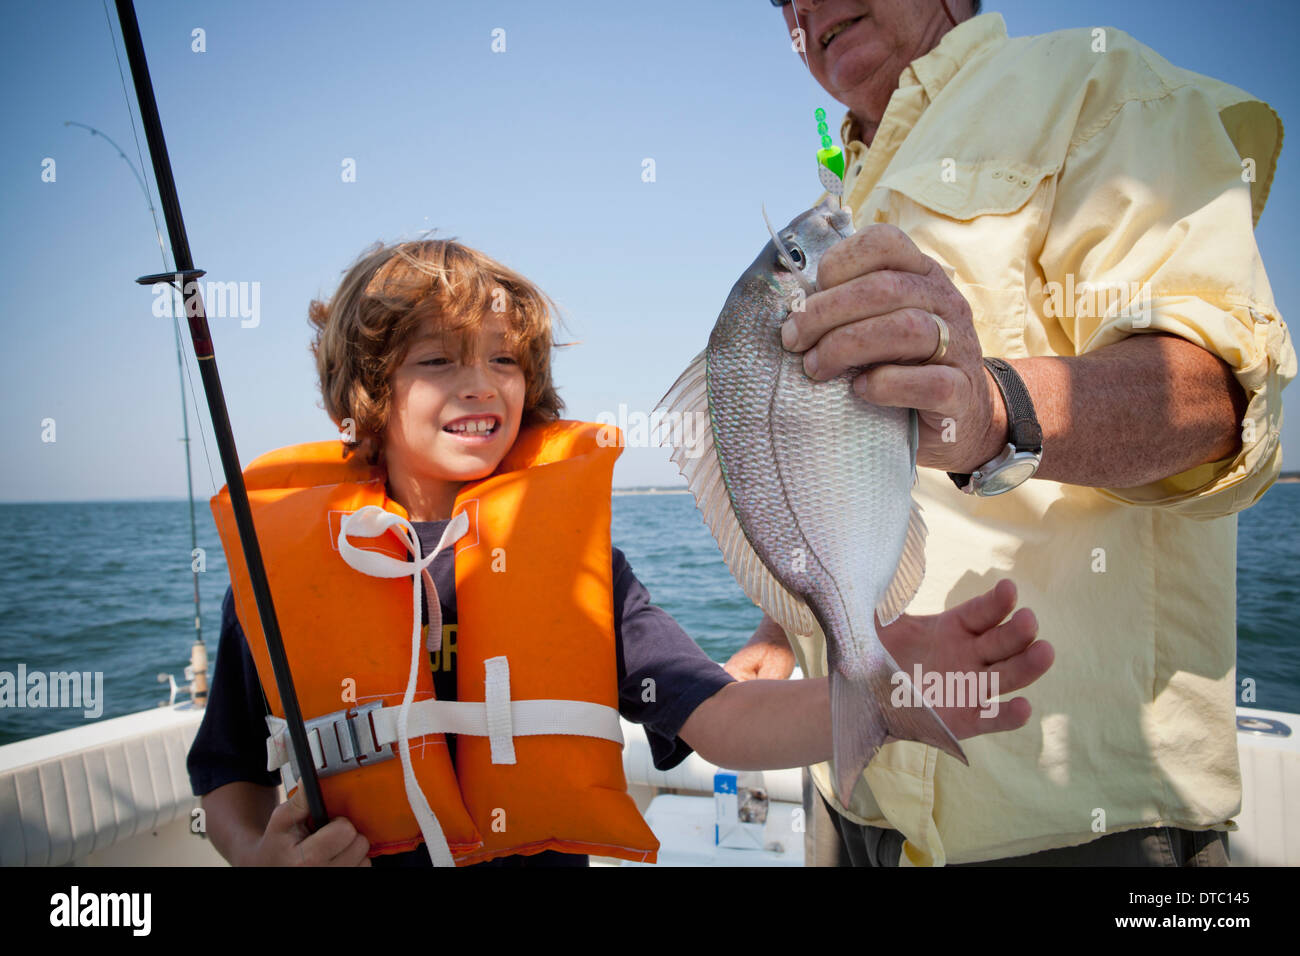 Boy and grandfather with caught fish on boat, Falmouth, Massachusetts, USA - Stock Image